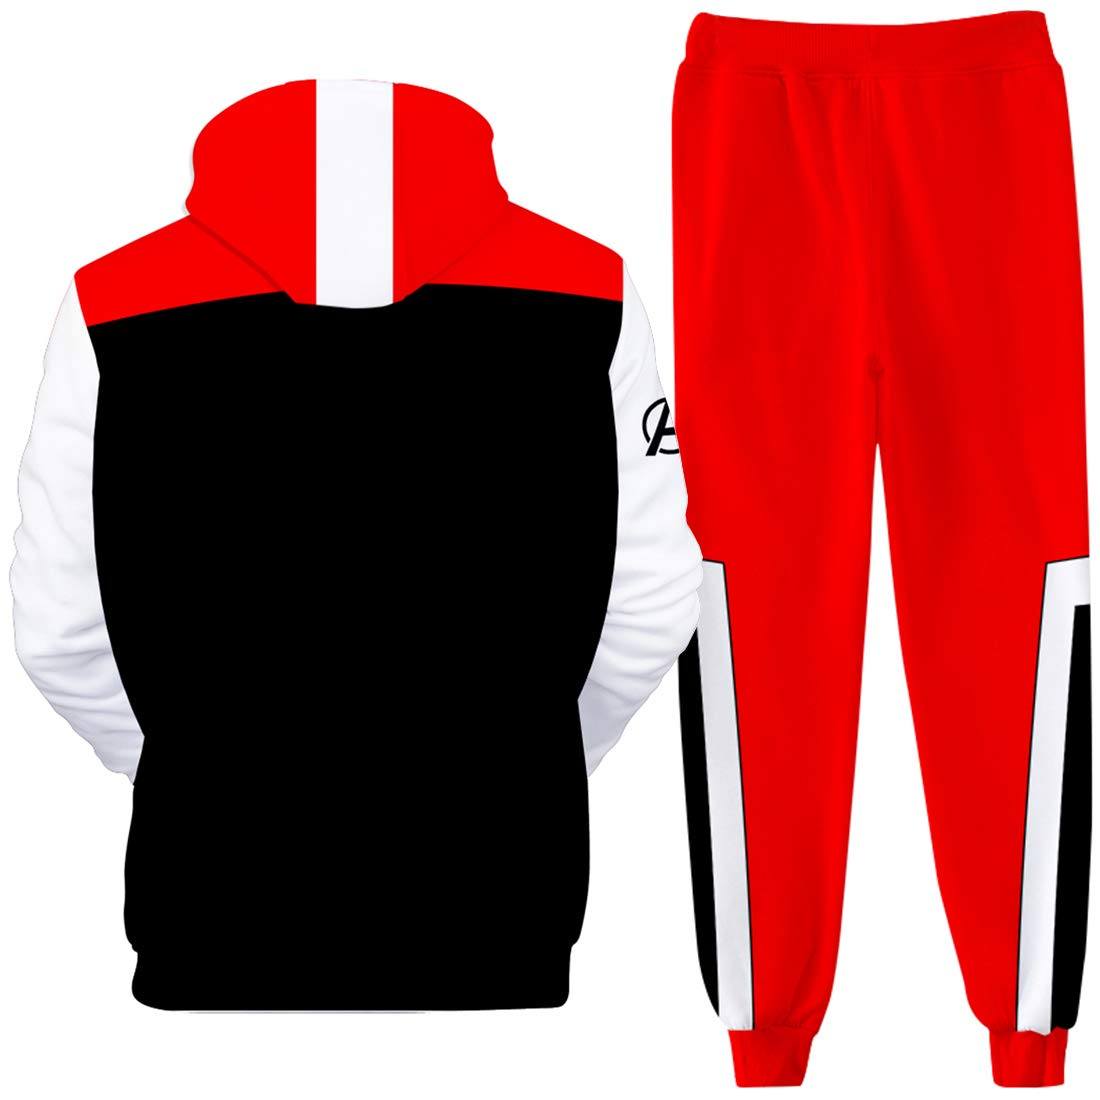 EmilyLe Boys Avengers Endgame Clothing Sets Superhero Hoodie with Sweatpants Quantum Realm Cosplay Costumes for Kids